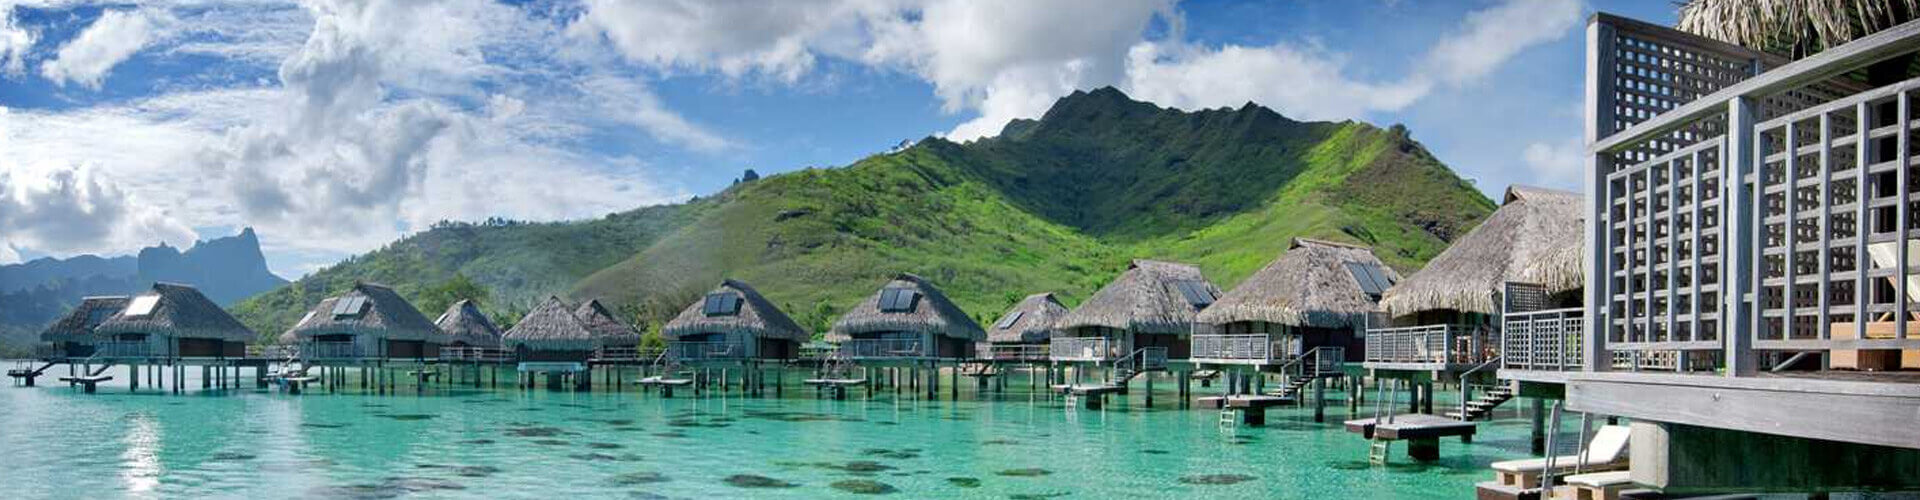 overwater bungallows of the hotel Hilton moorea